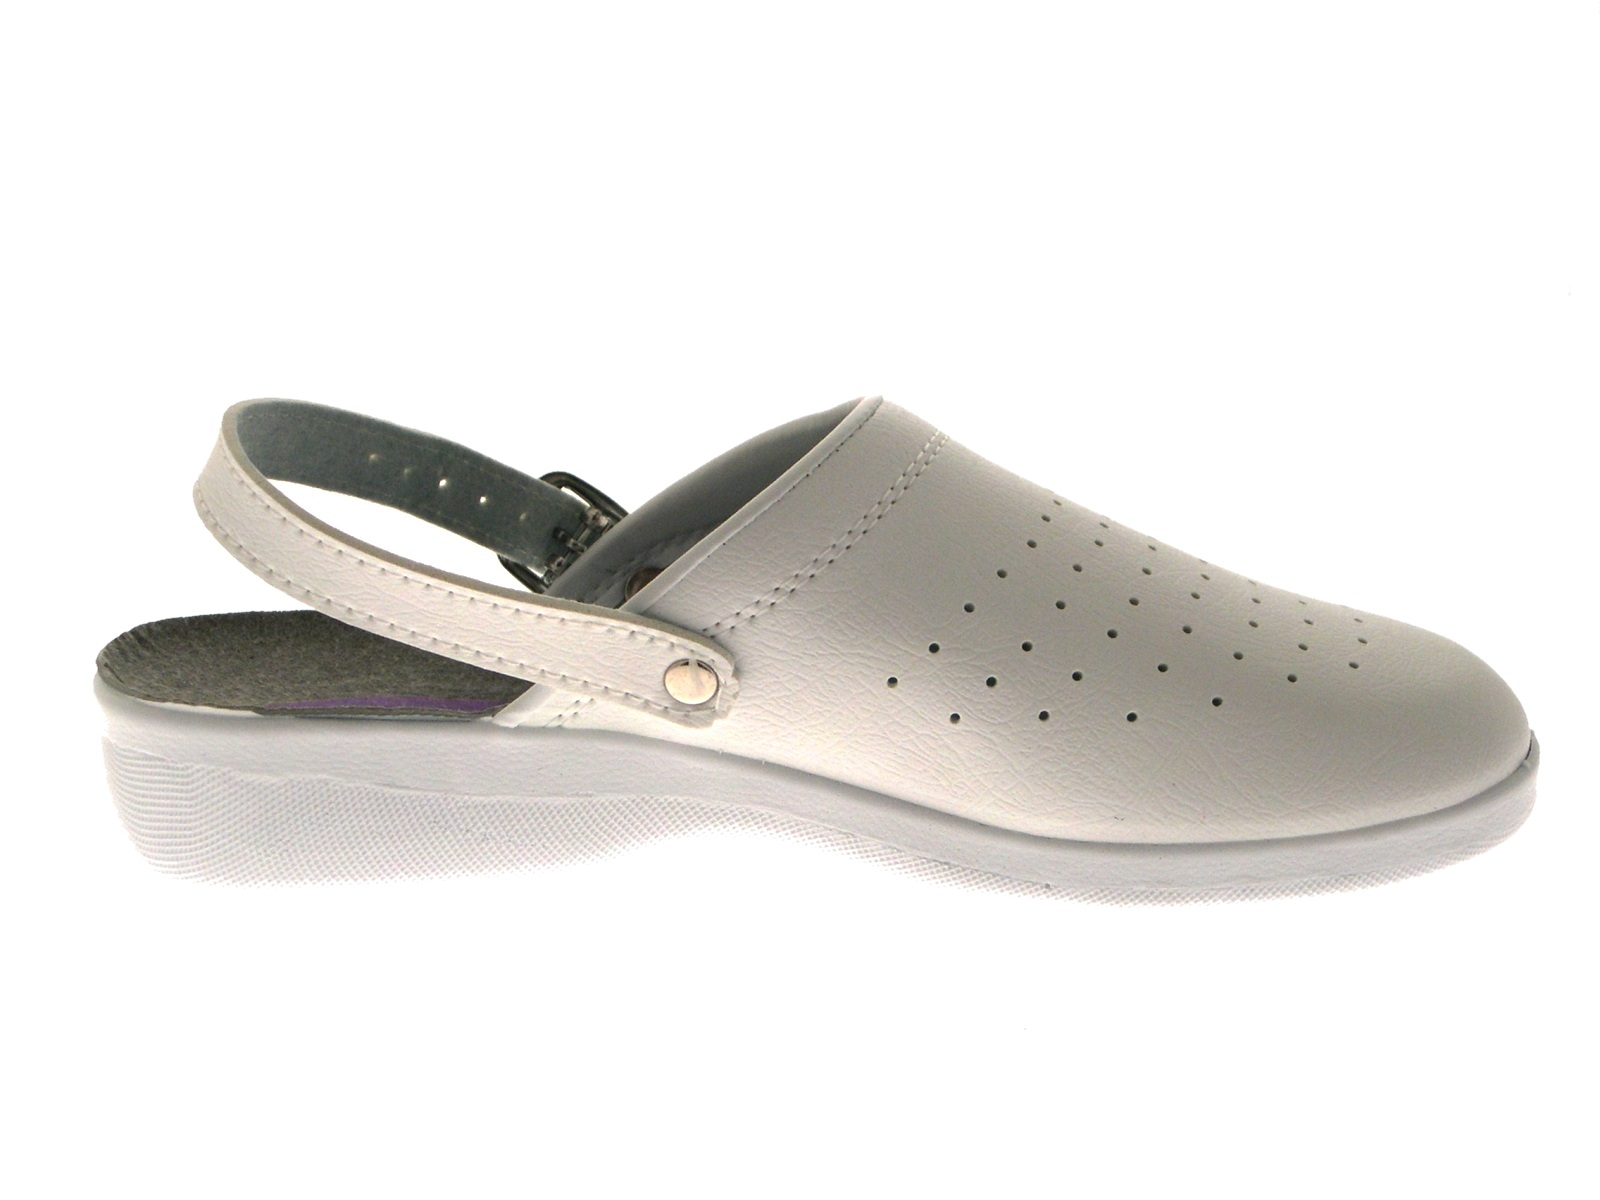 shoes for kitchen workers gas ranges womens white full toe hospital clogs ladies work